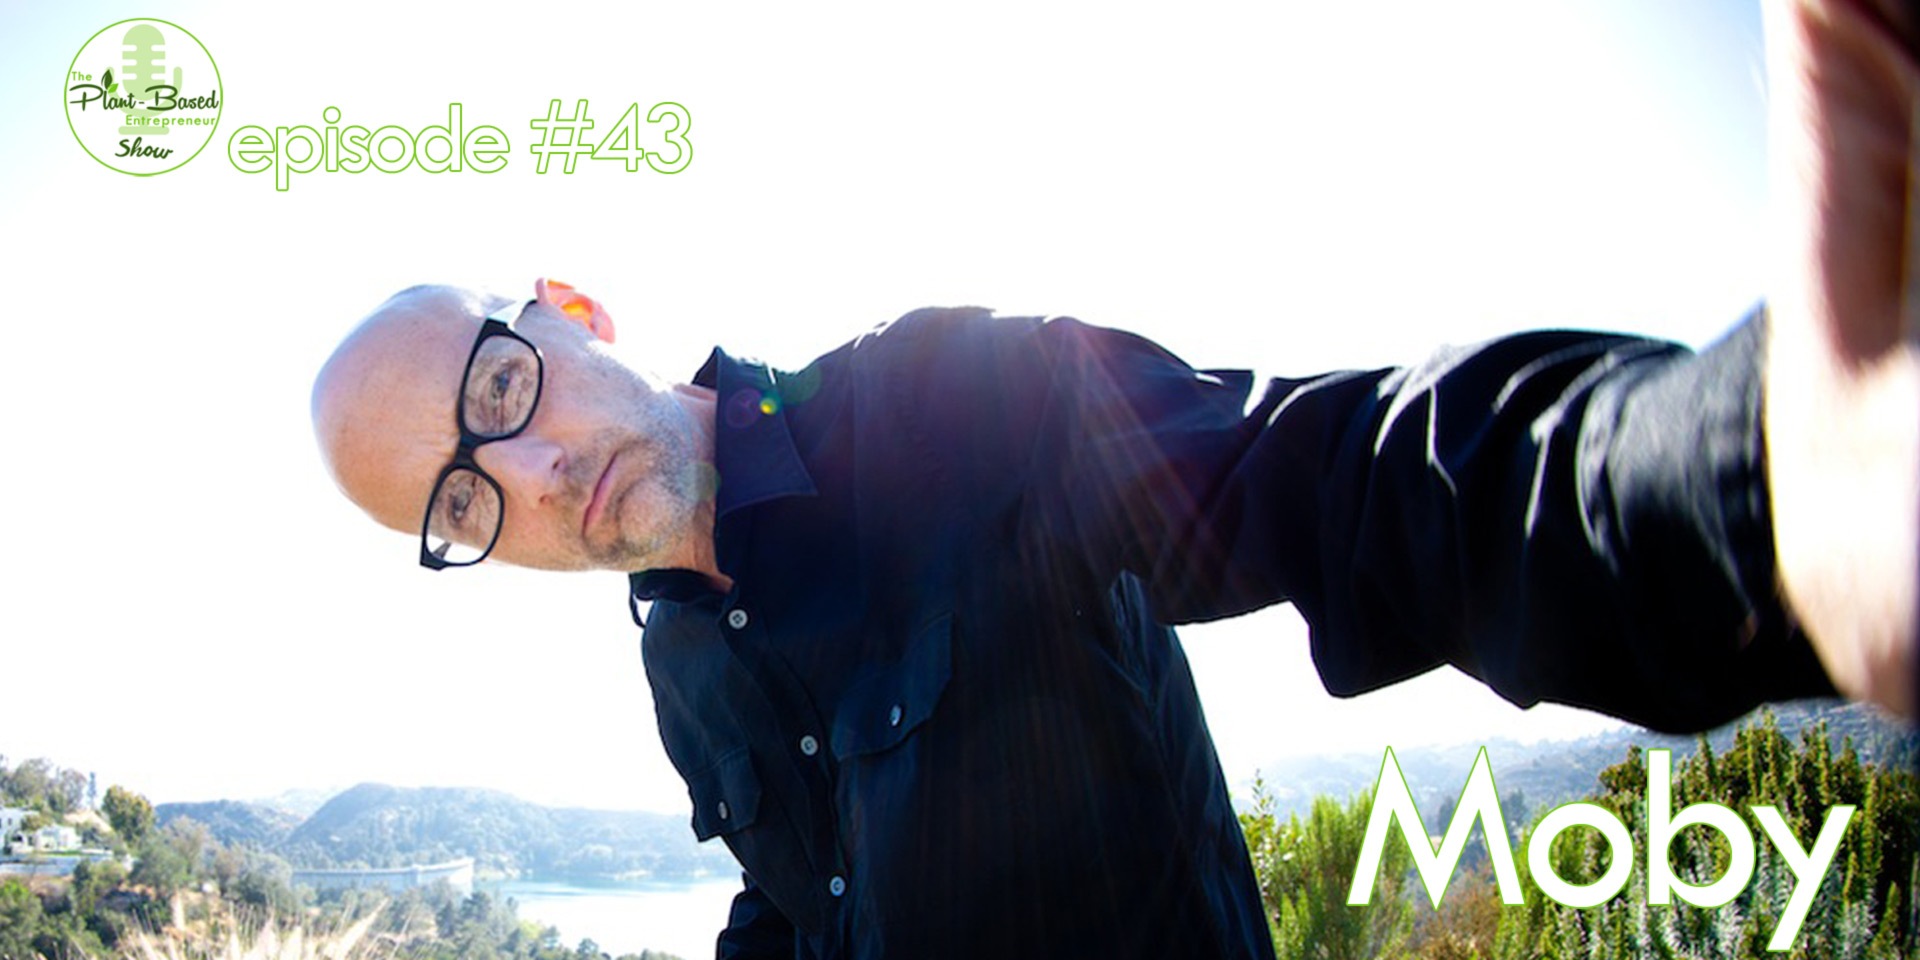 Episode #43 - Moby